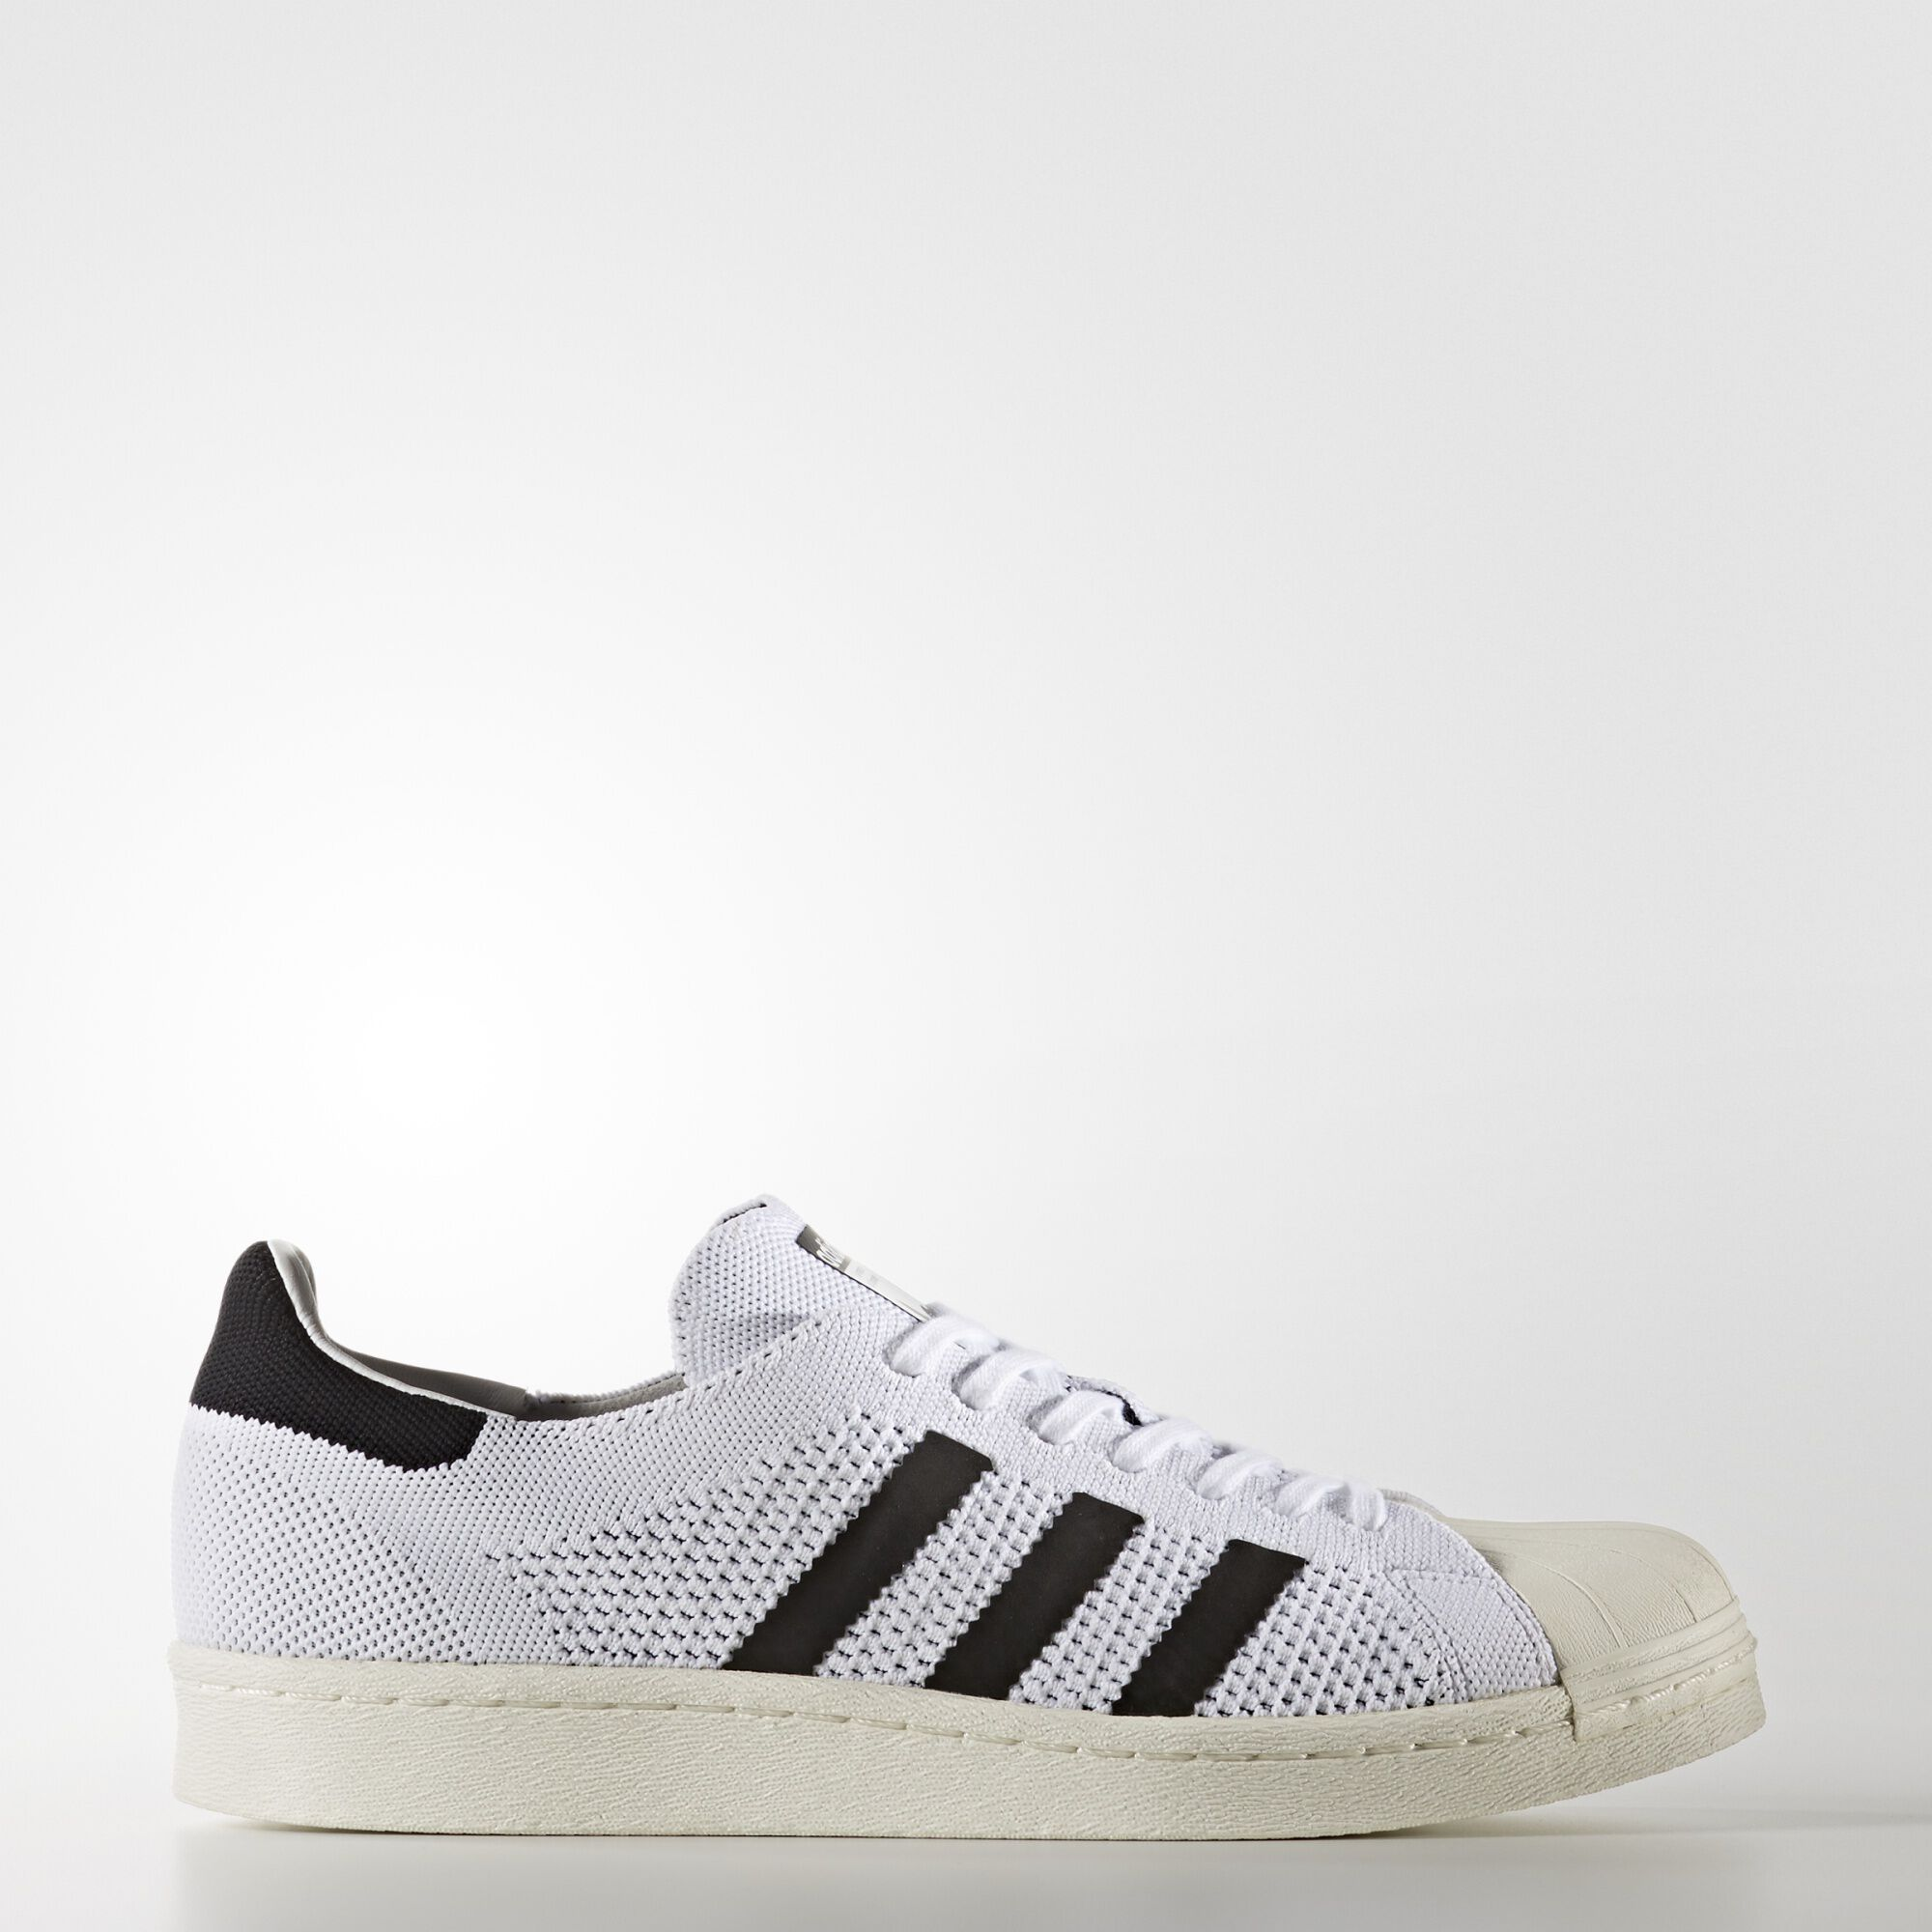 Buy adidas shoes for men   OFF63% Discounted bbf5a682a07af